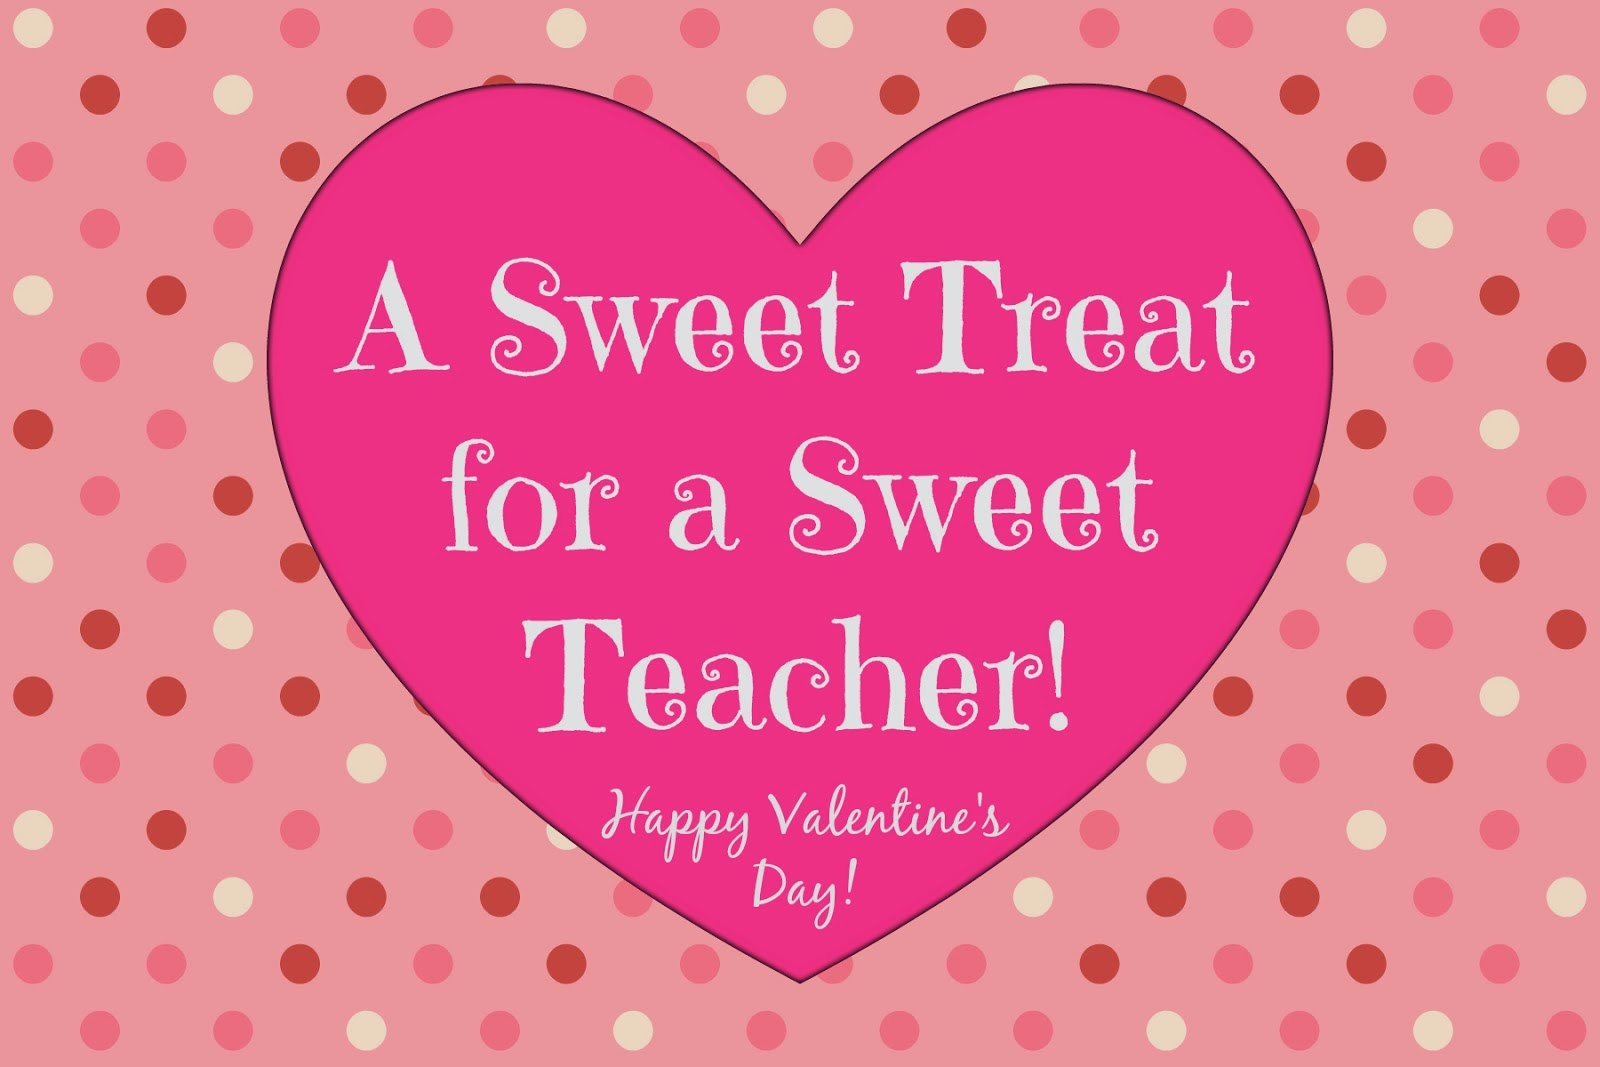 Old Valentines Day Quotes Teachers